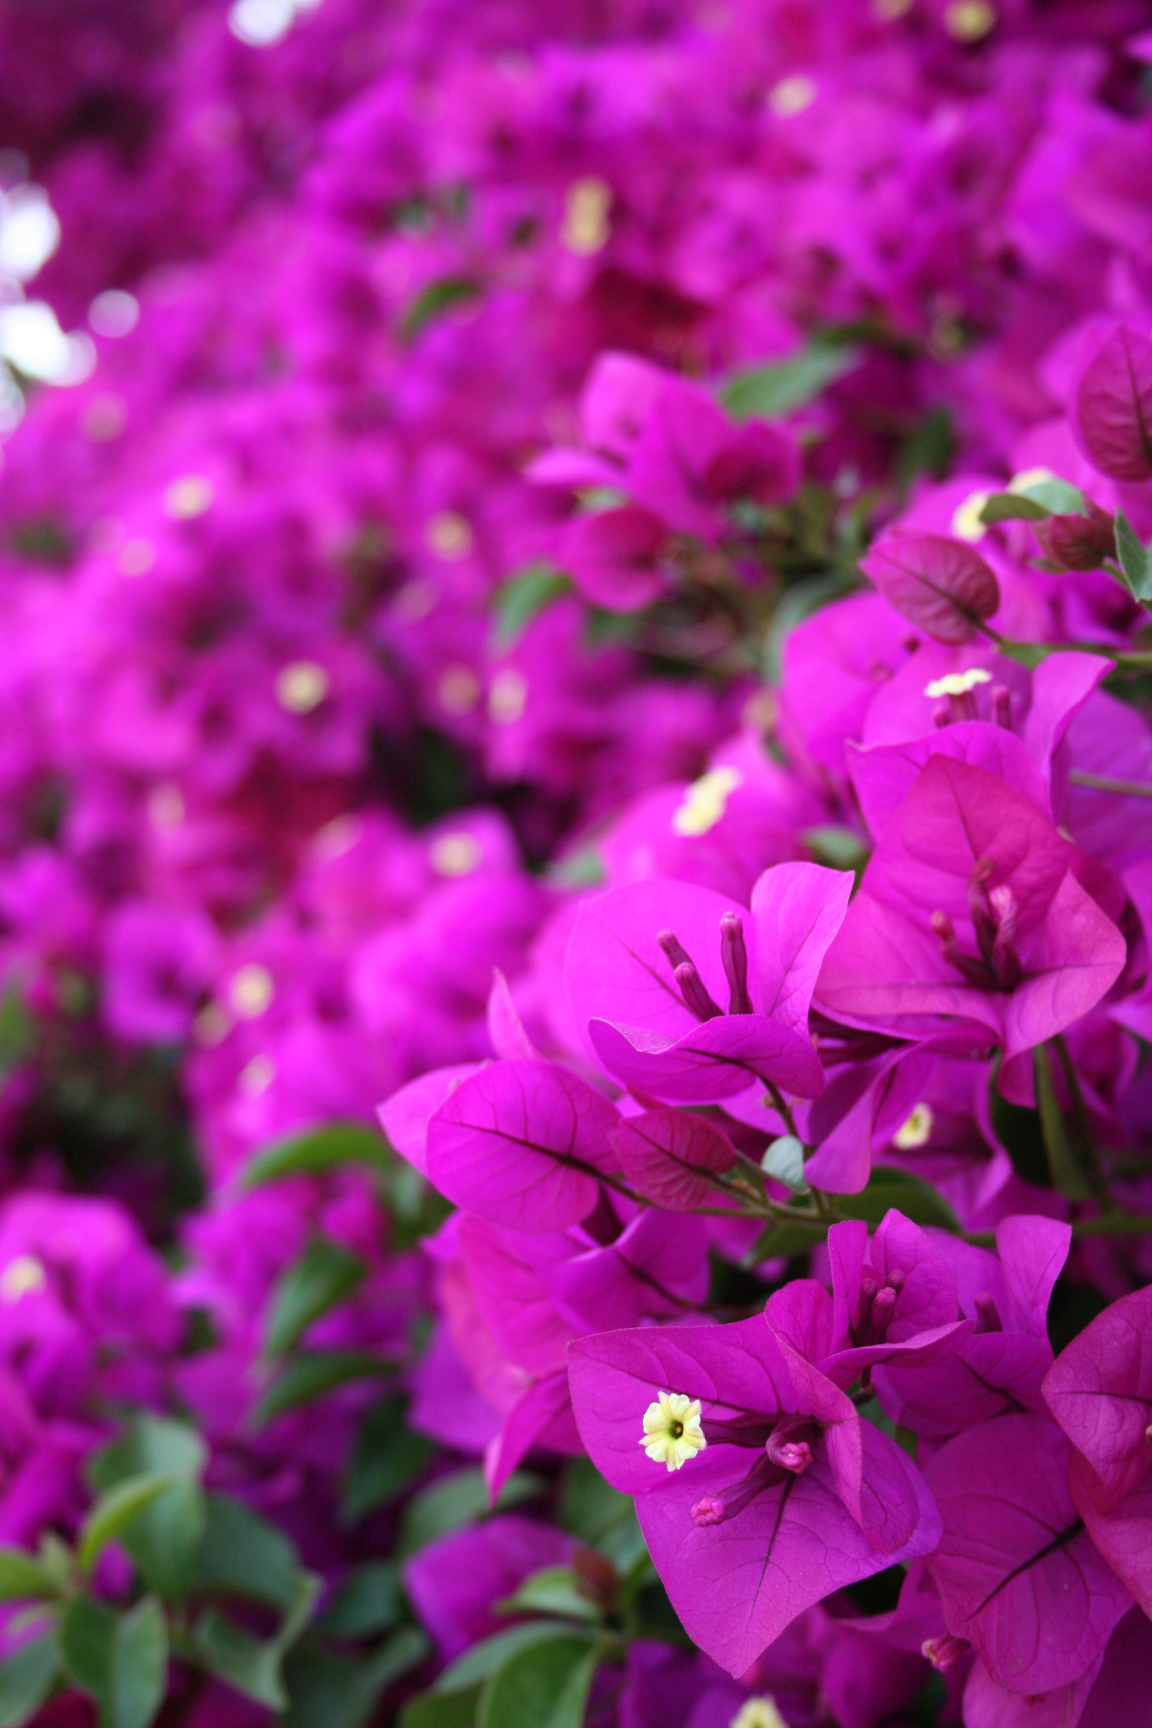 Purple Flowers by HaMaSeR